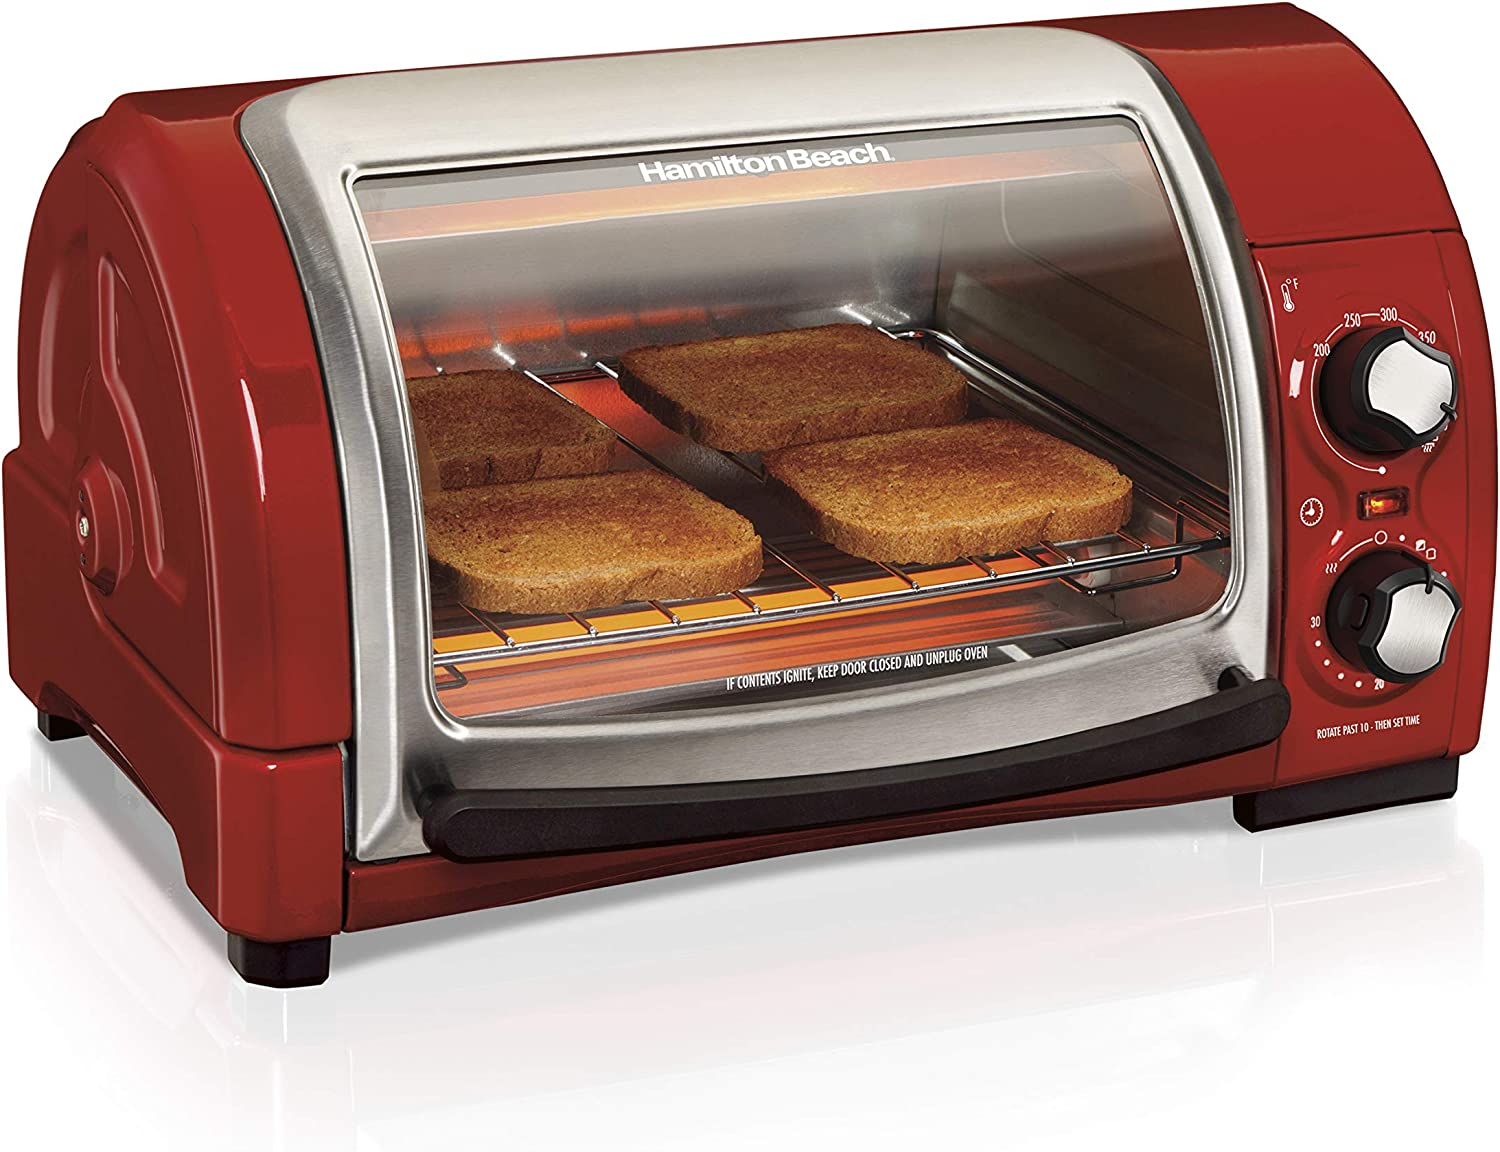 Hamilton Beach Easy Reach Countertop Toaster Oven, 4-Slices, Red (31337D)